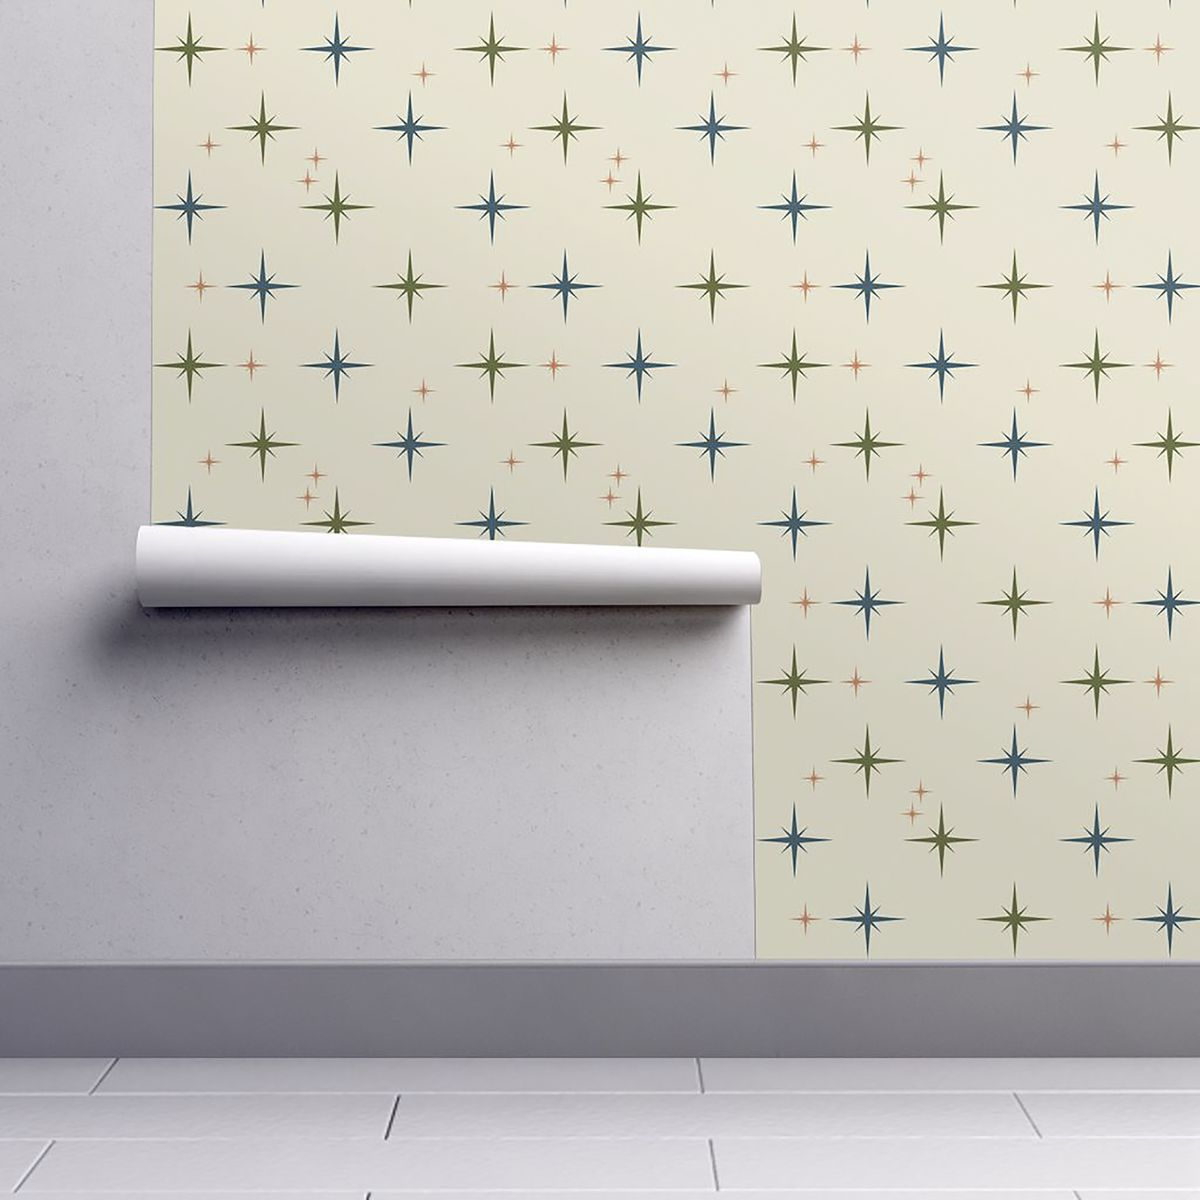 Midcentury Modern Wallpaper Lets You Live Out Your 1950s